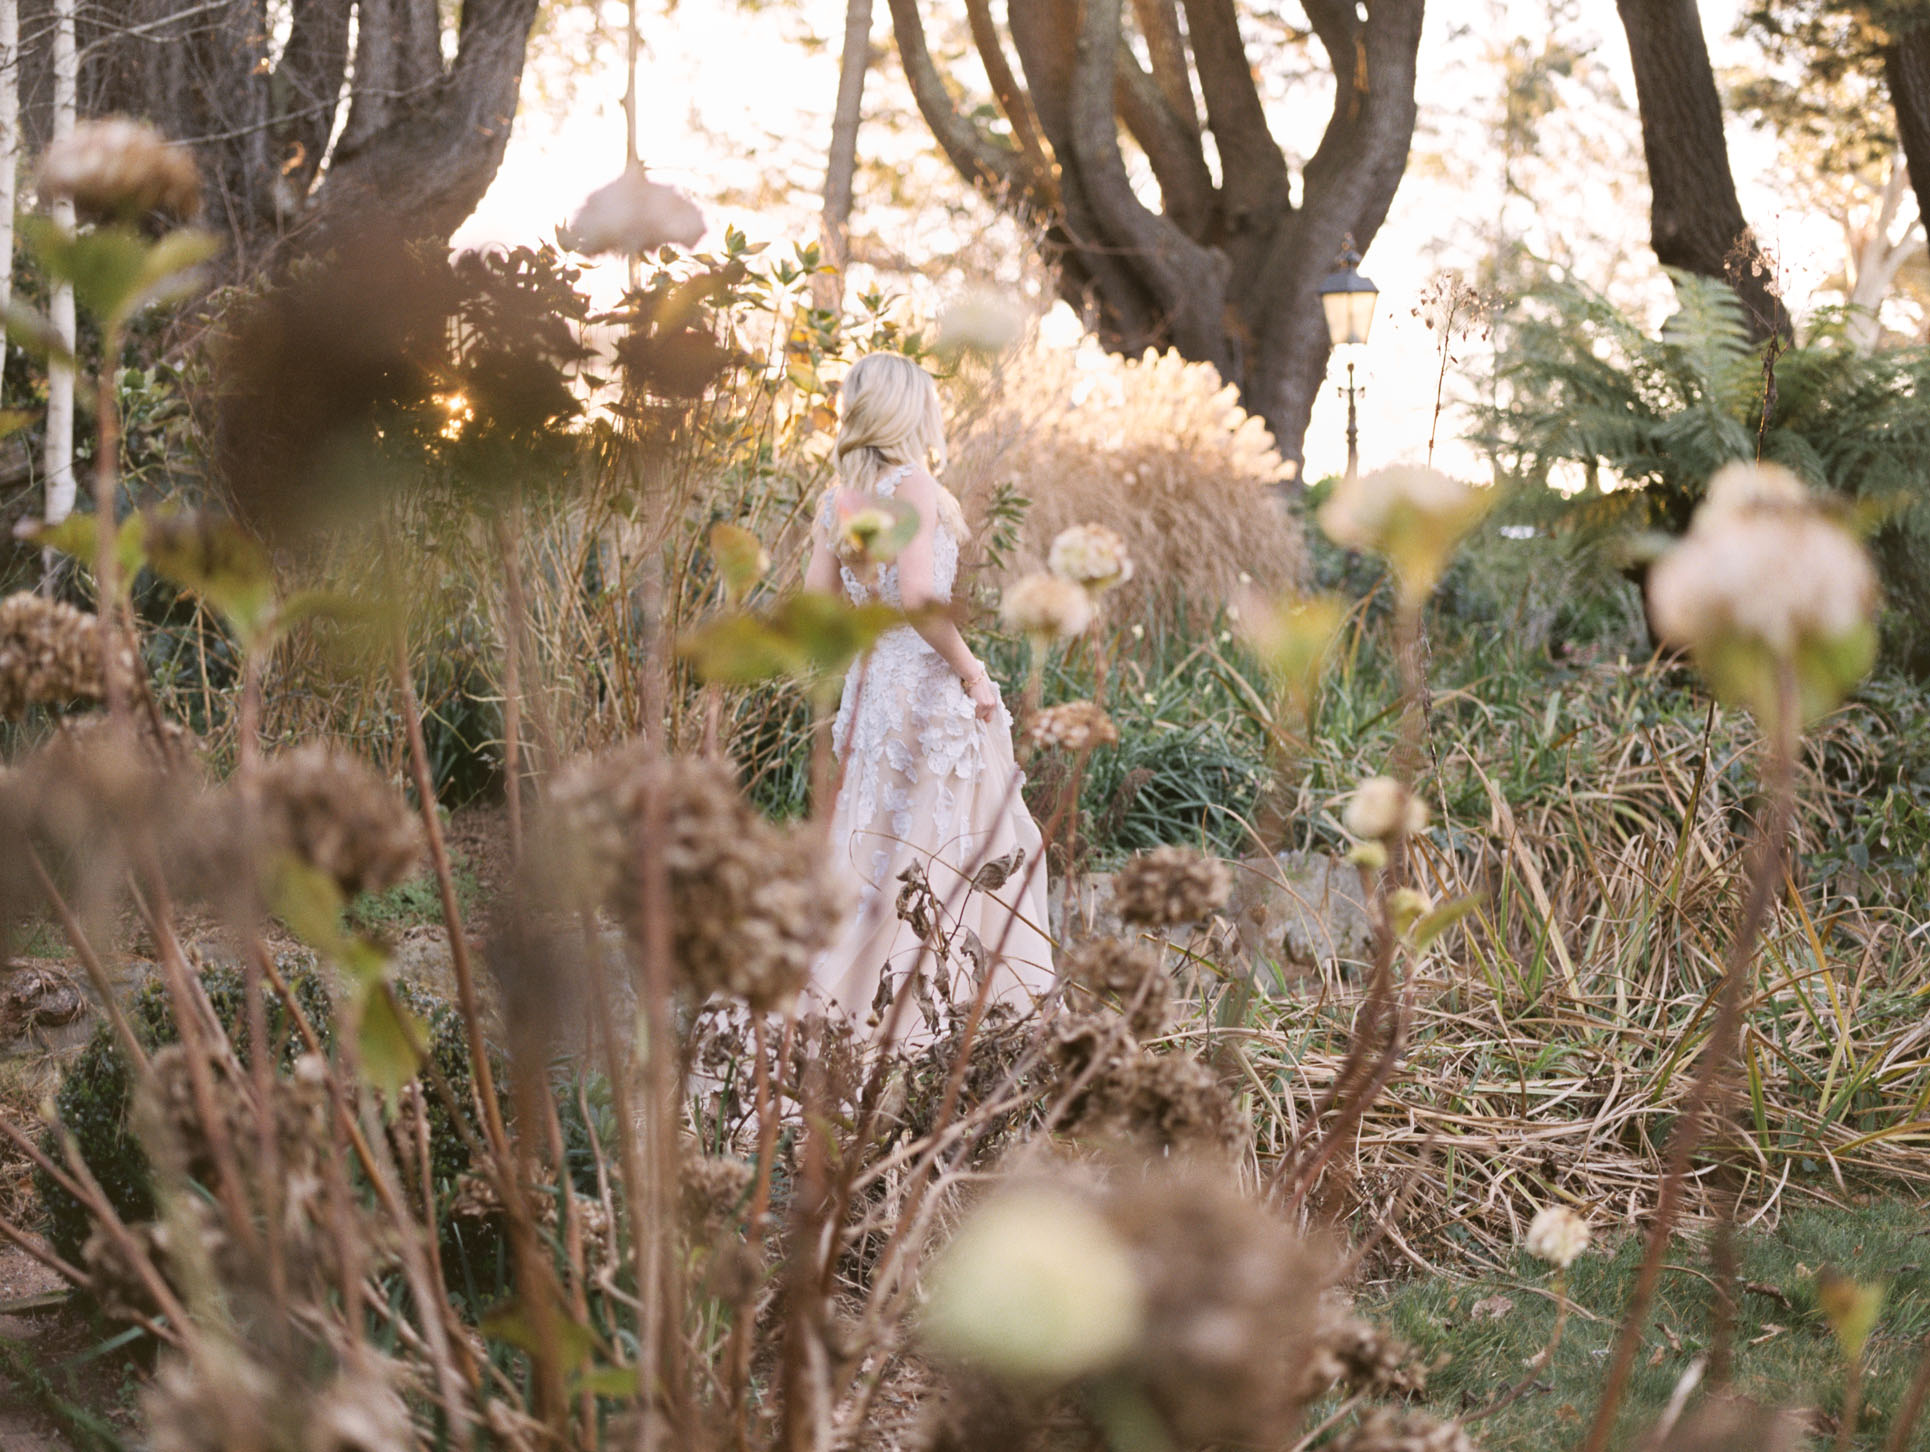 Hopewood House - Romantic Winter Wedding Shoot - Lilli Kad Photography - Shot - Garden Dalliance.jpeg